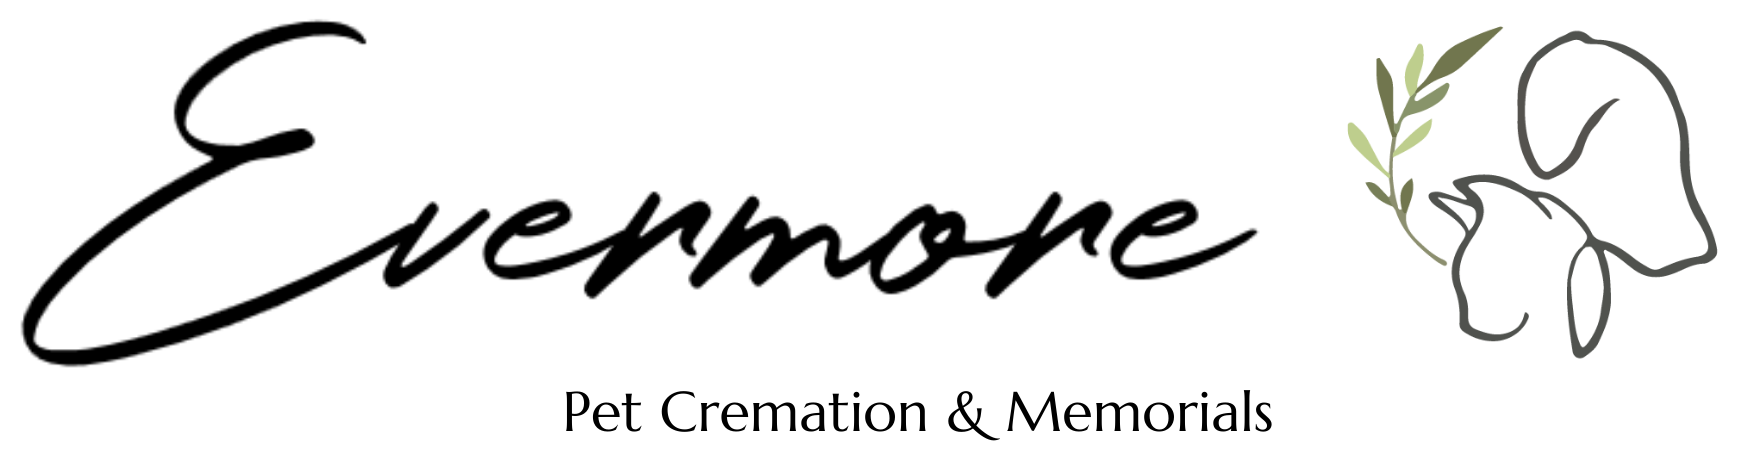 Evermore Pet Cremation - Perth gallery image